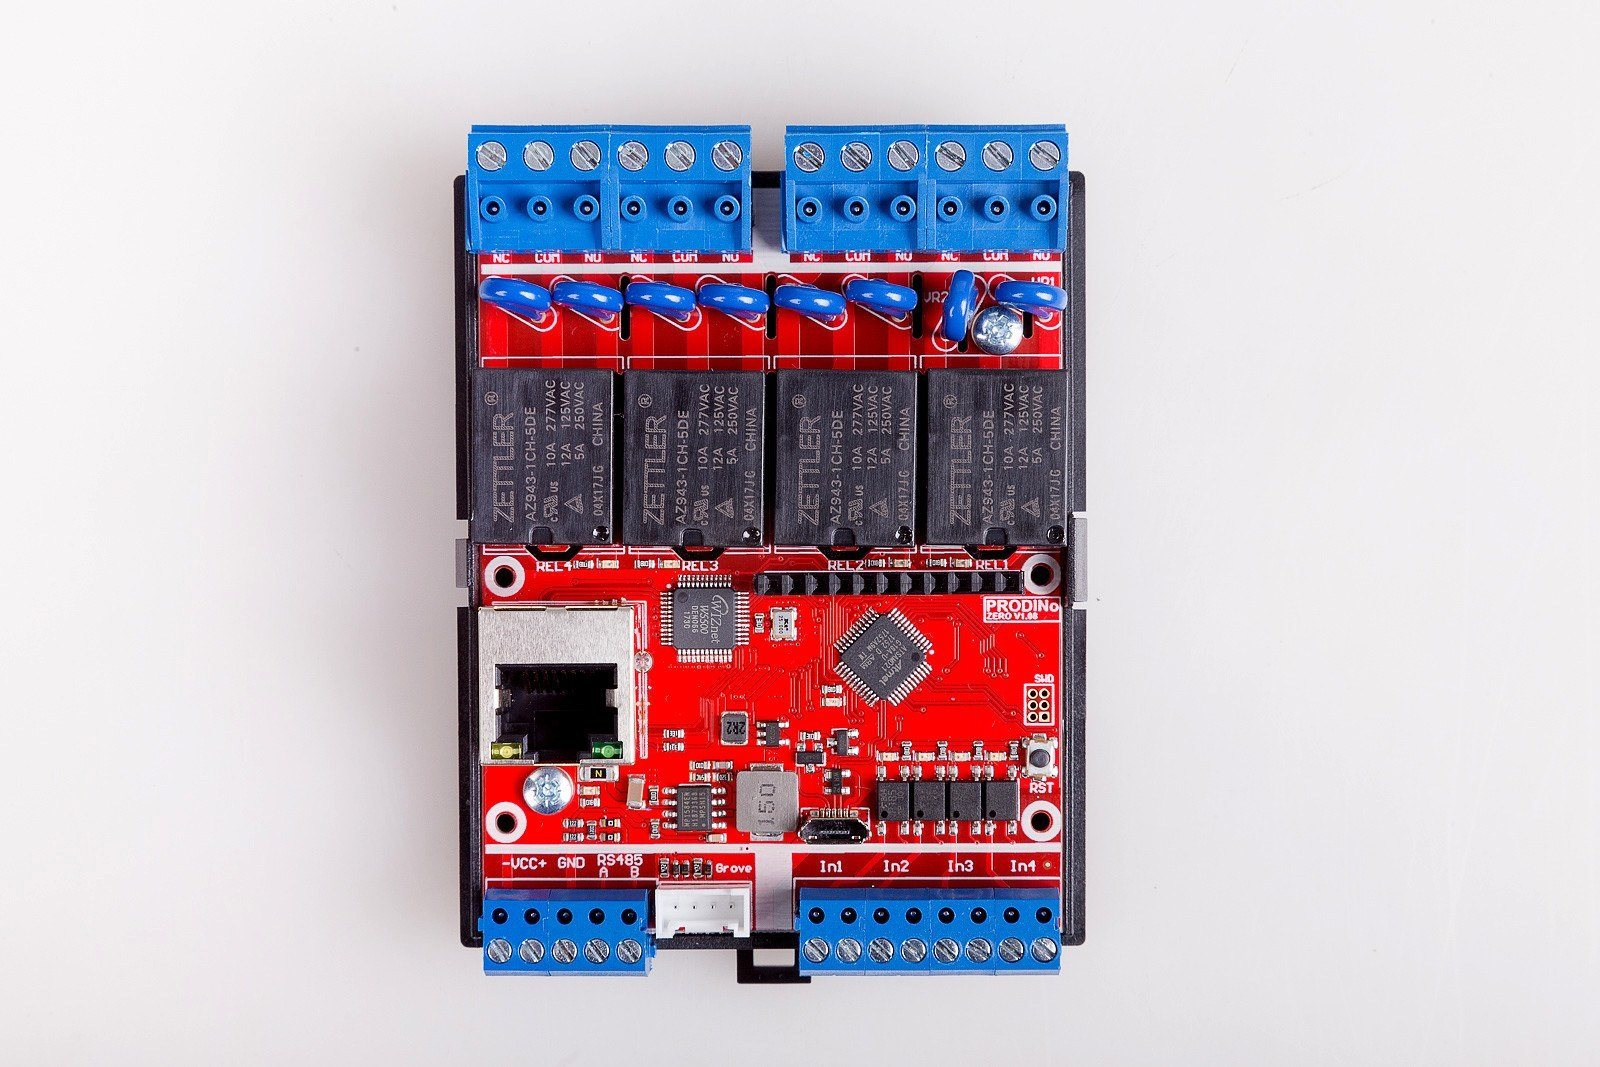 ProDino MKR Zero Ethernet V1 Board top